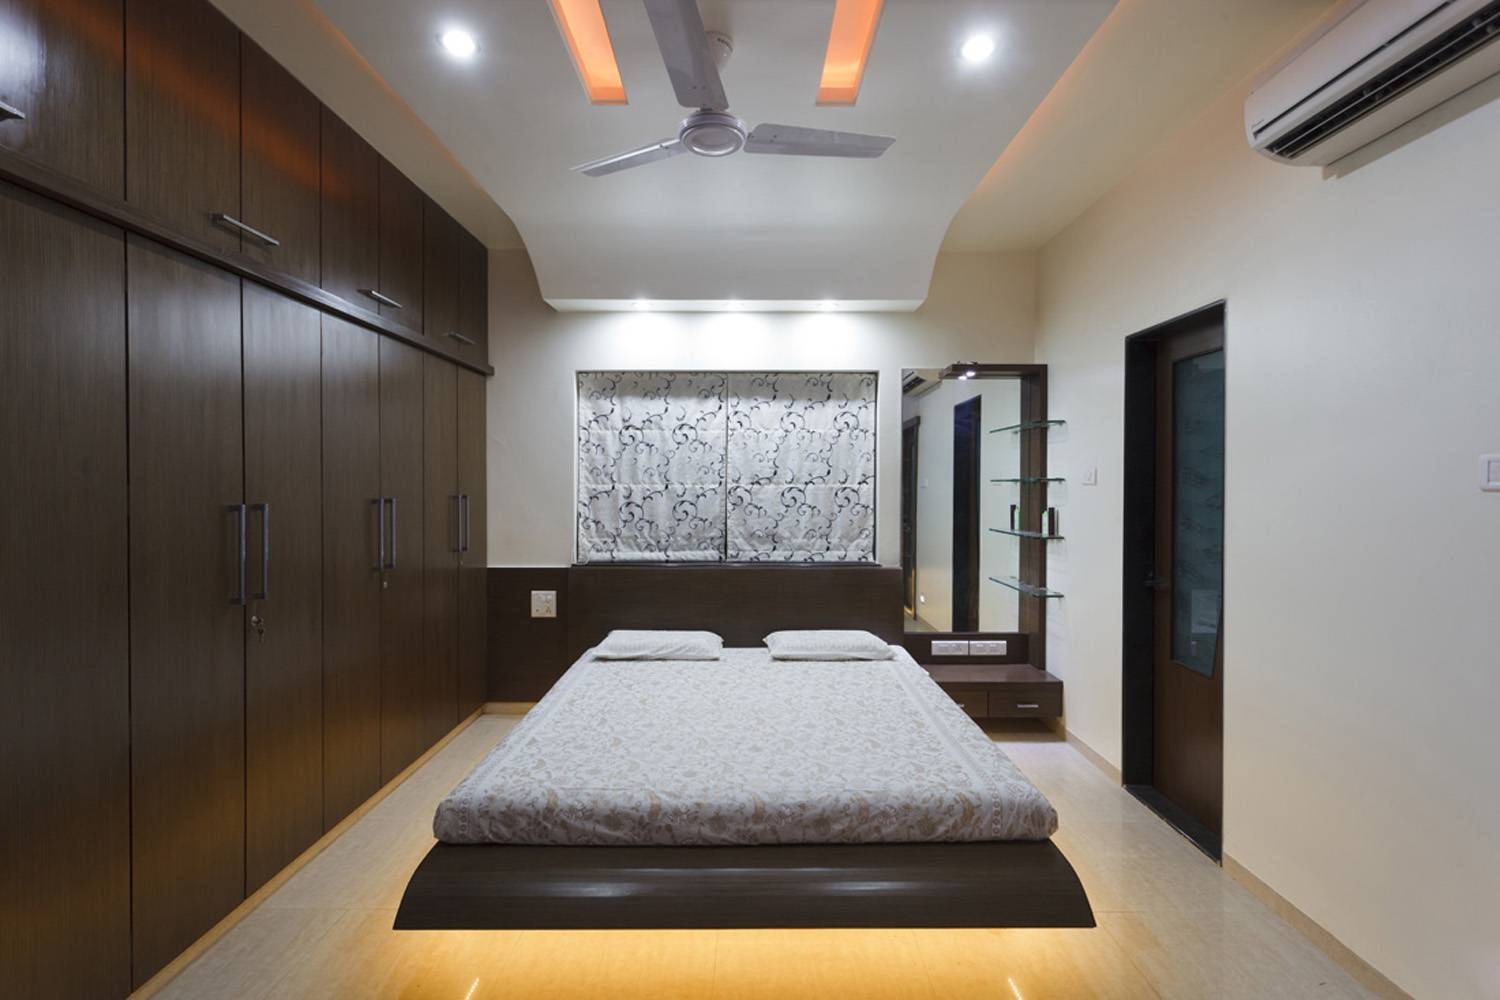 bedroom_interior_012.jpg